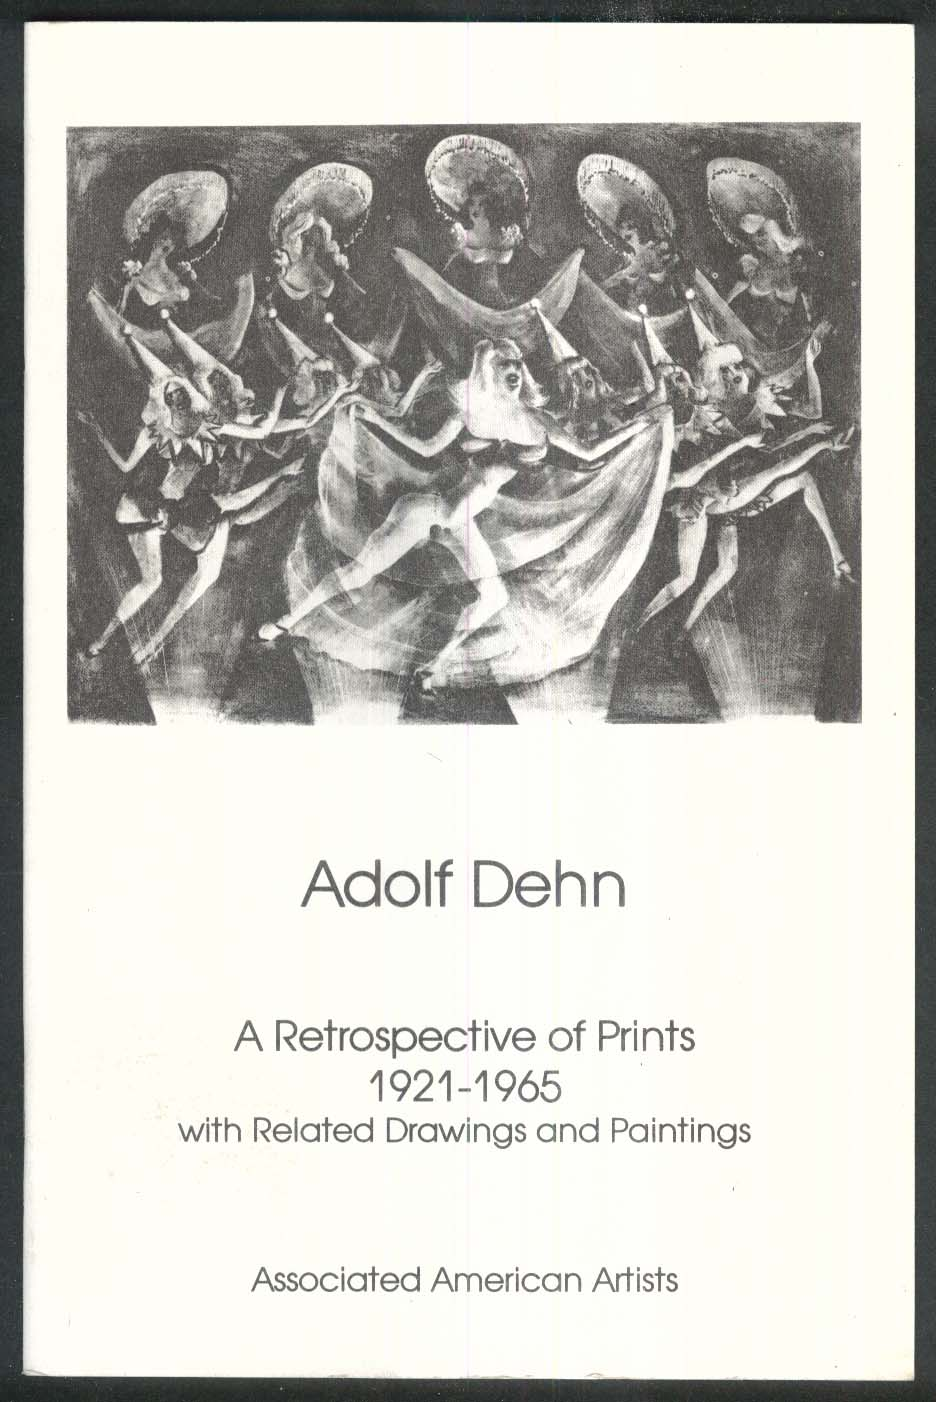 Adolf Dehn: Retrospective of Prints art exhibition catalog 1988